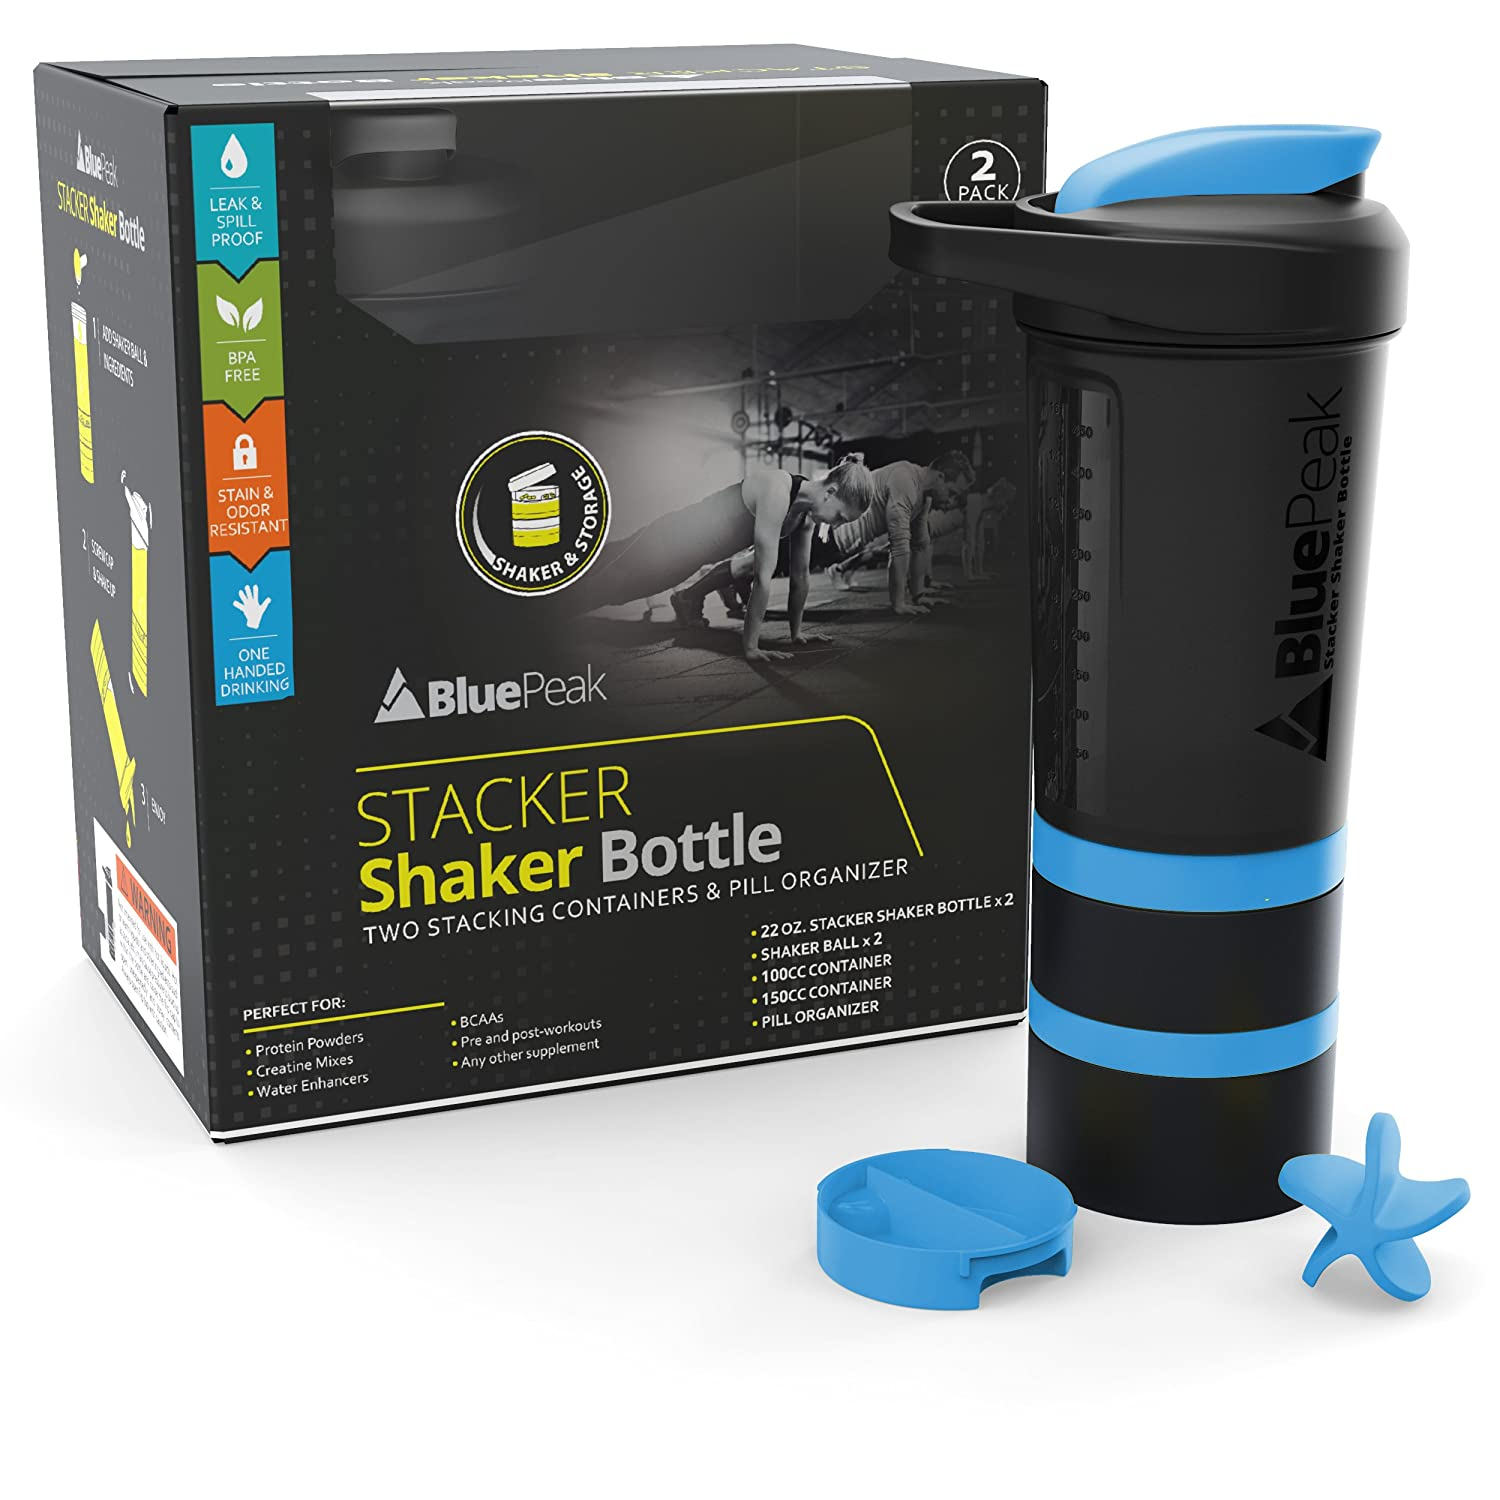 BluePeak Stacker Protein Shaker Bottle 22-Ounce, 2-Pack ProStak. Attachable Storage Containers (100 & 150cc) and Pill Tray Included. BPA Free